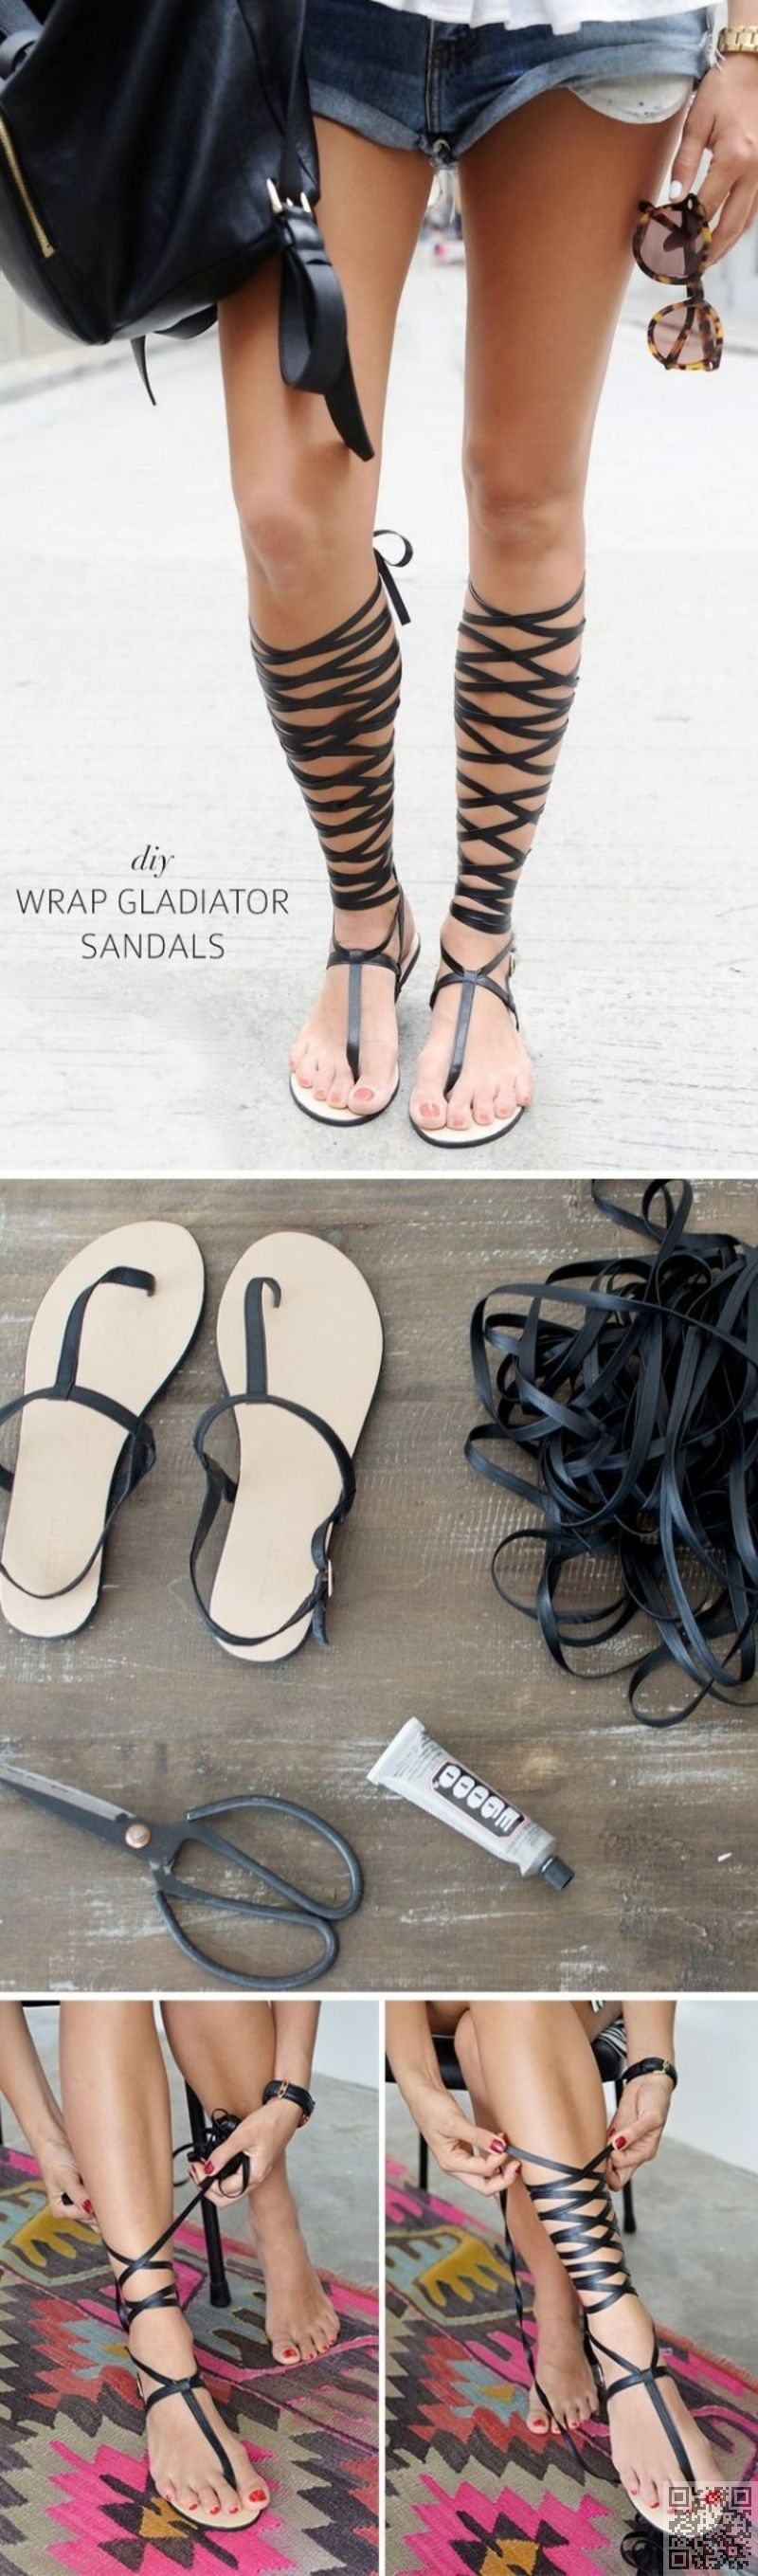 a9e6e16f525bd DIY Lace up Gladiator Sandals